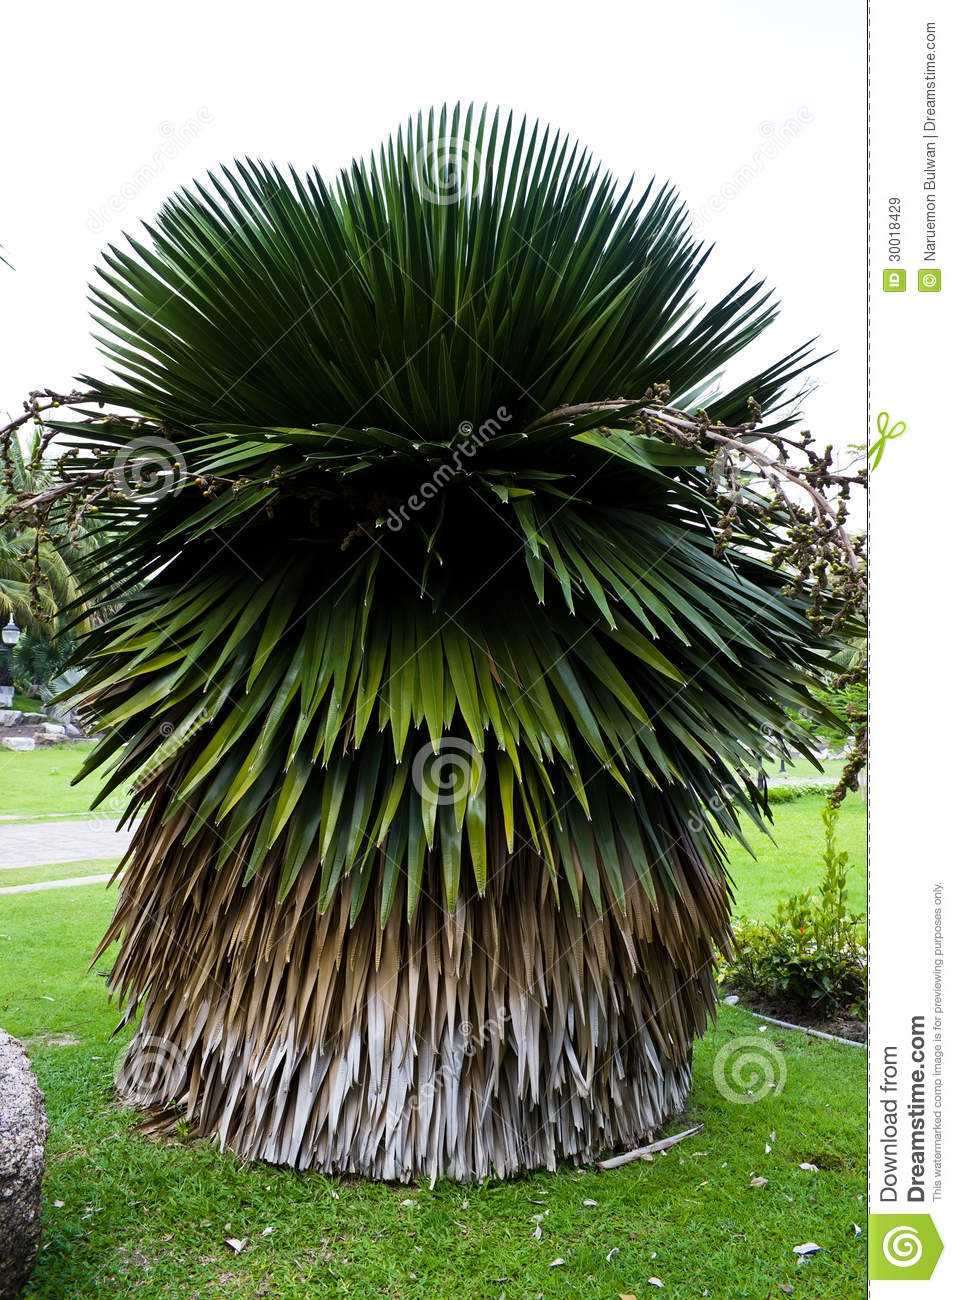 cuban petticoat palm tree royalty free stock images image 30018429